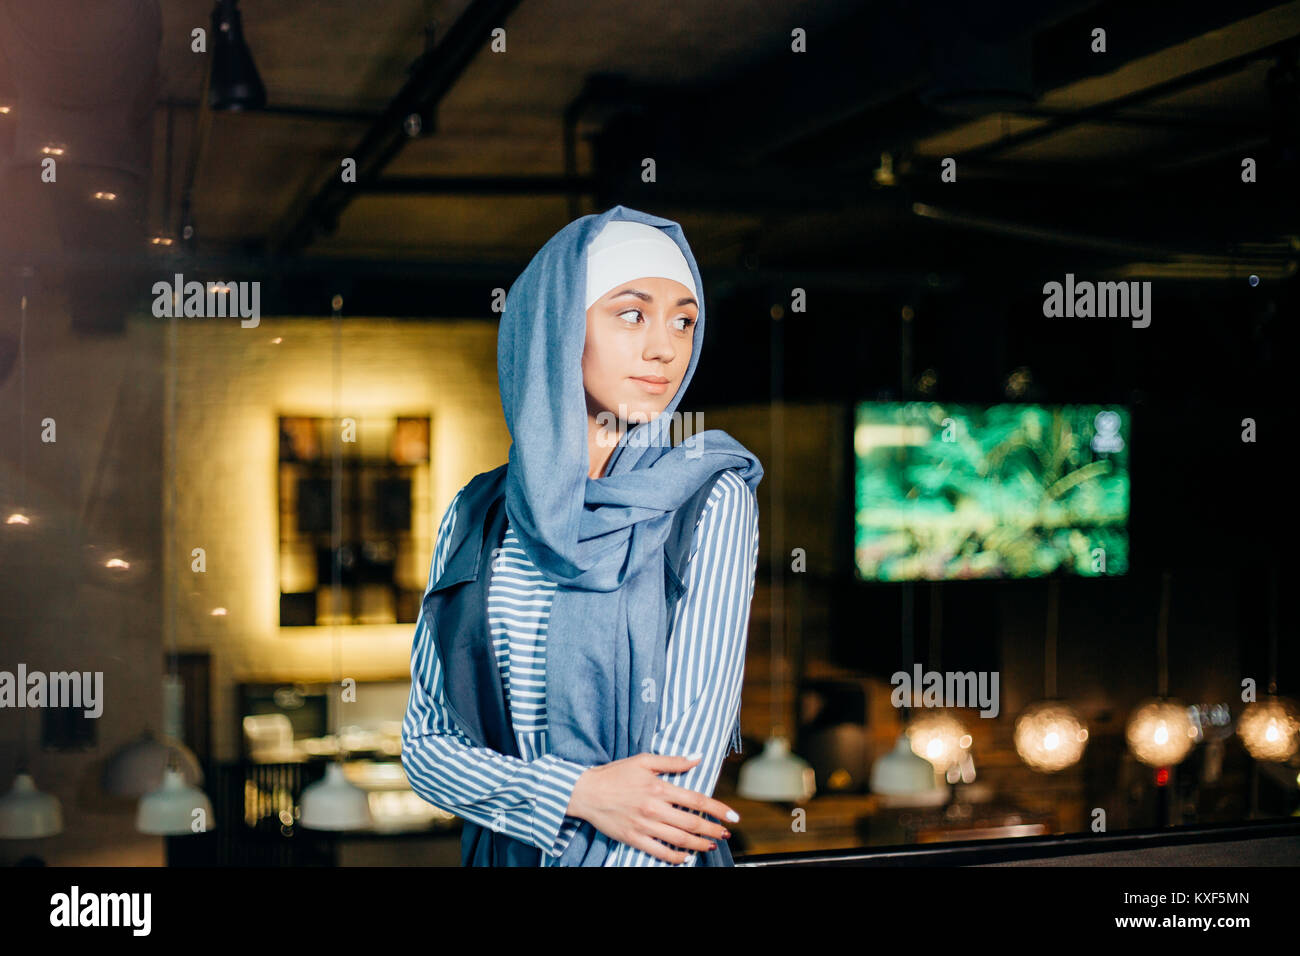 Portrait of a beautiful Muslim woman in cafe Stock Photo